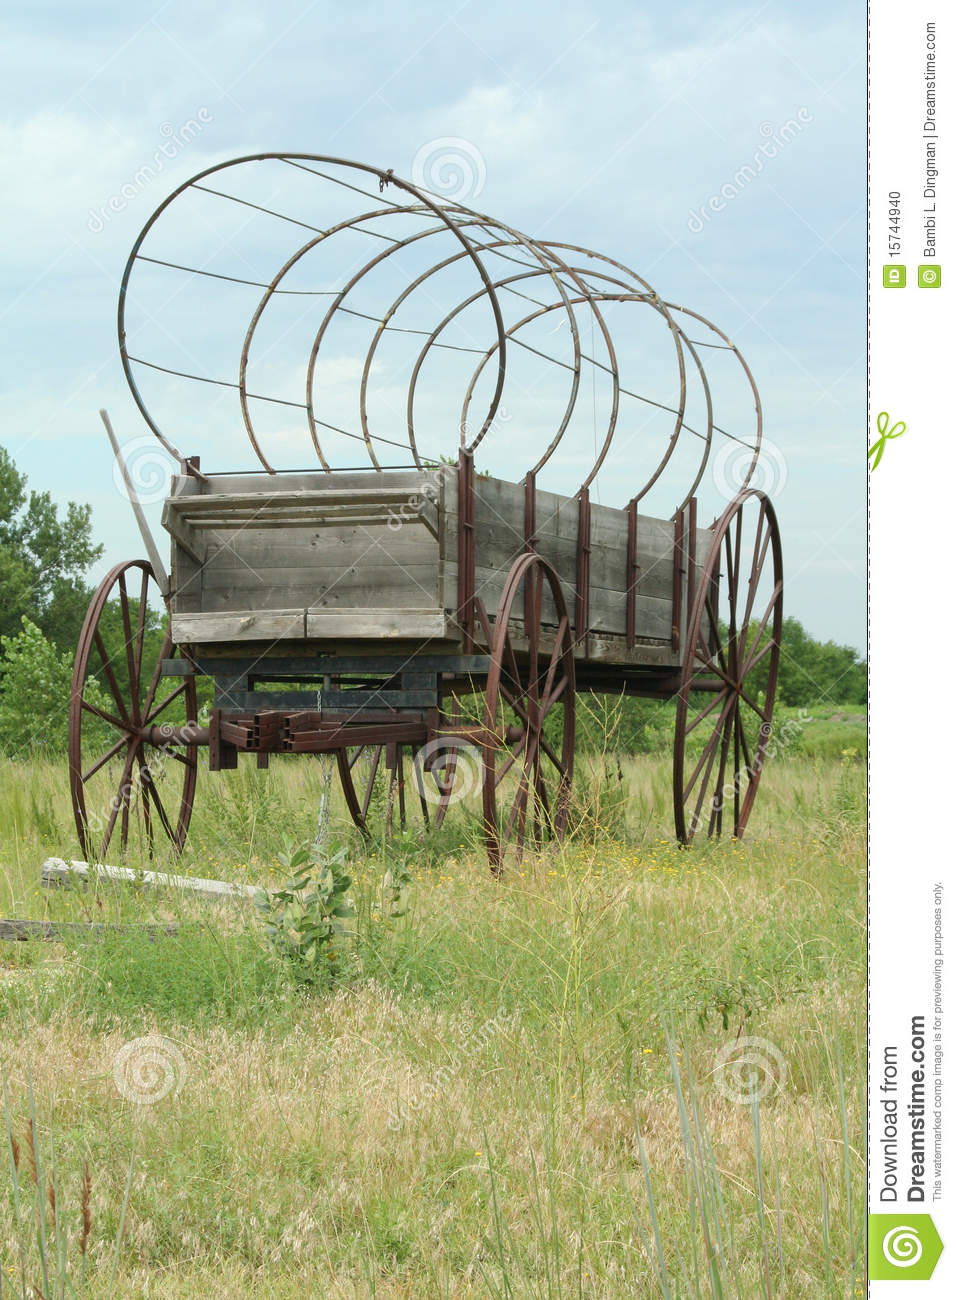 Covered Wagon stock photo  Image of axle, cowboy, seat